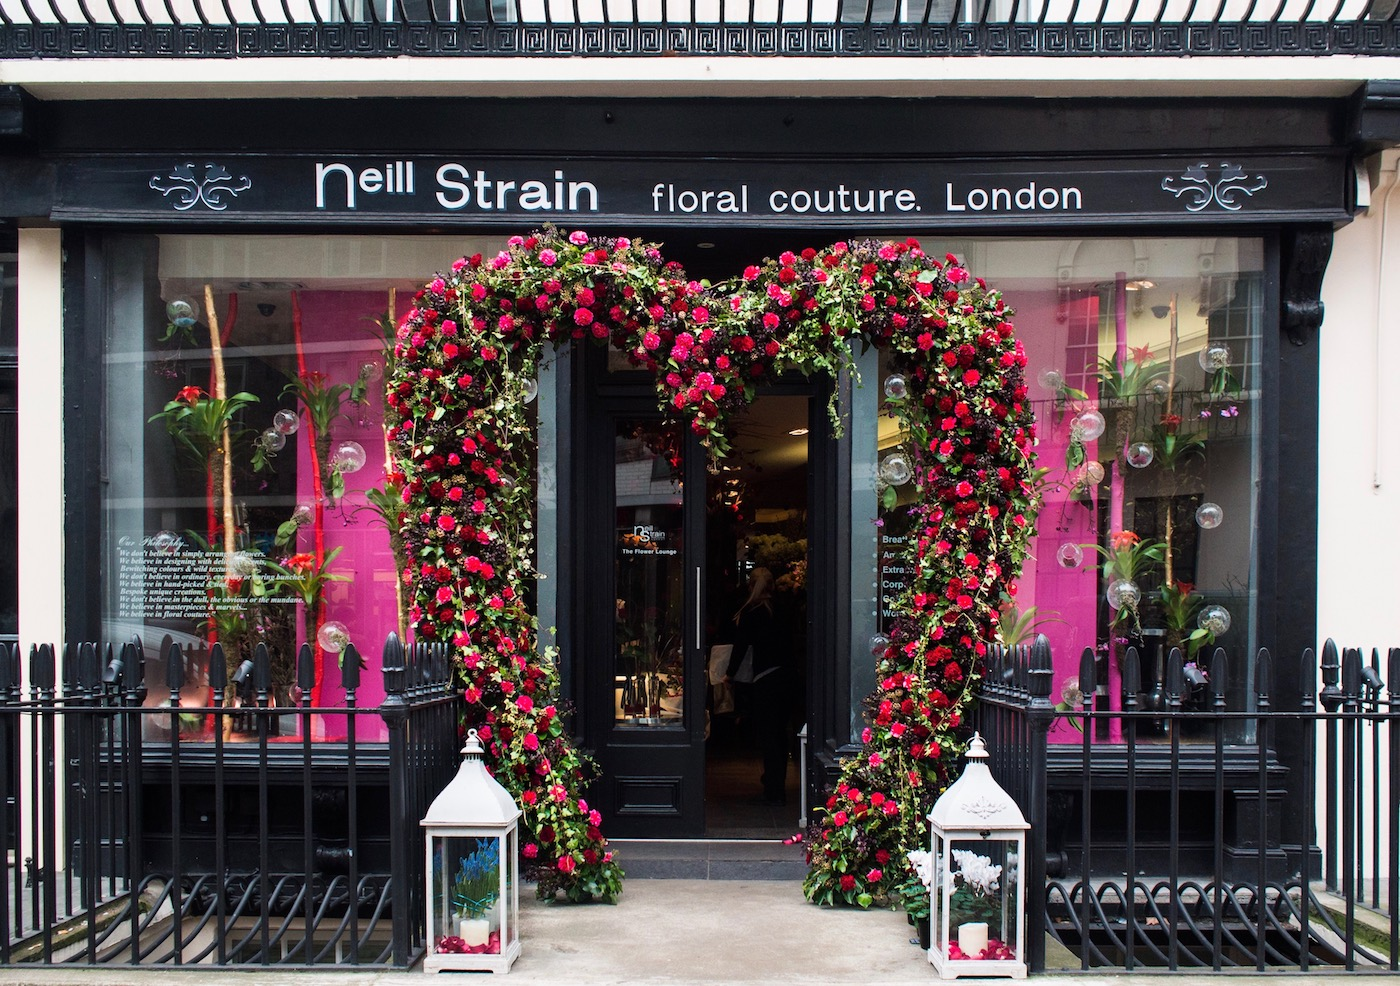 The Neill Strain Floral Couture boutique dressed for Valentine's Day